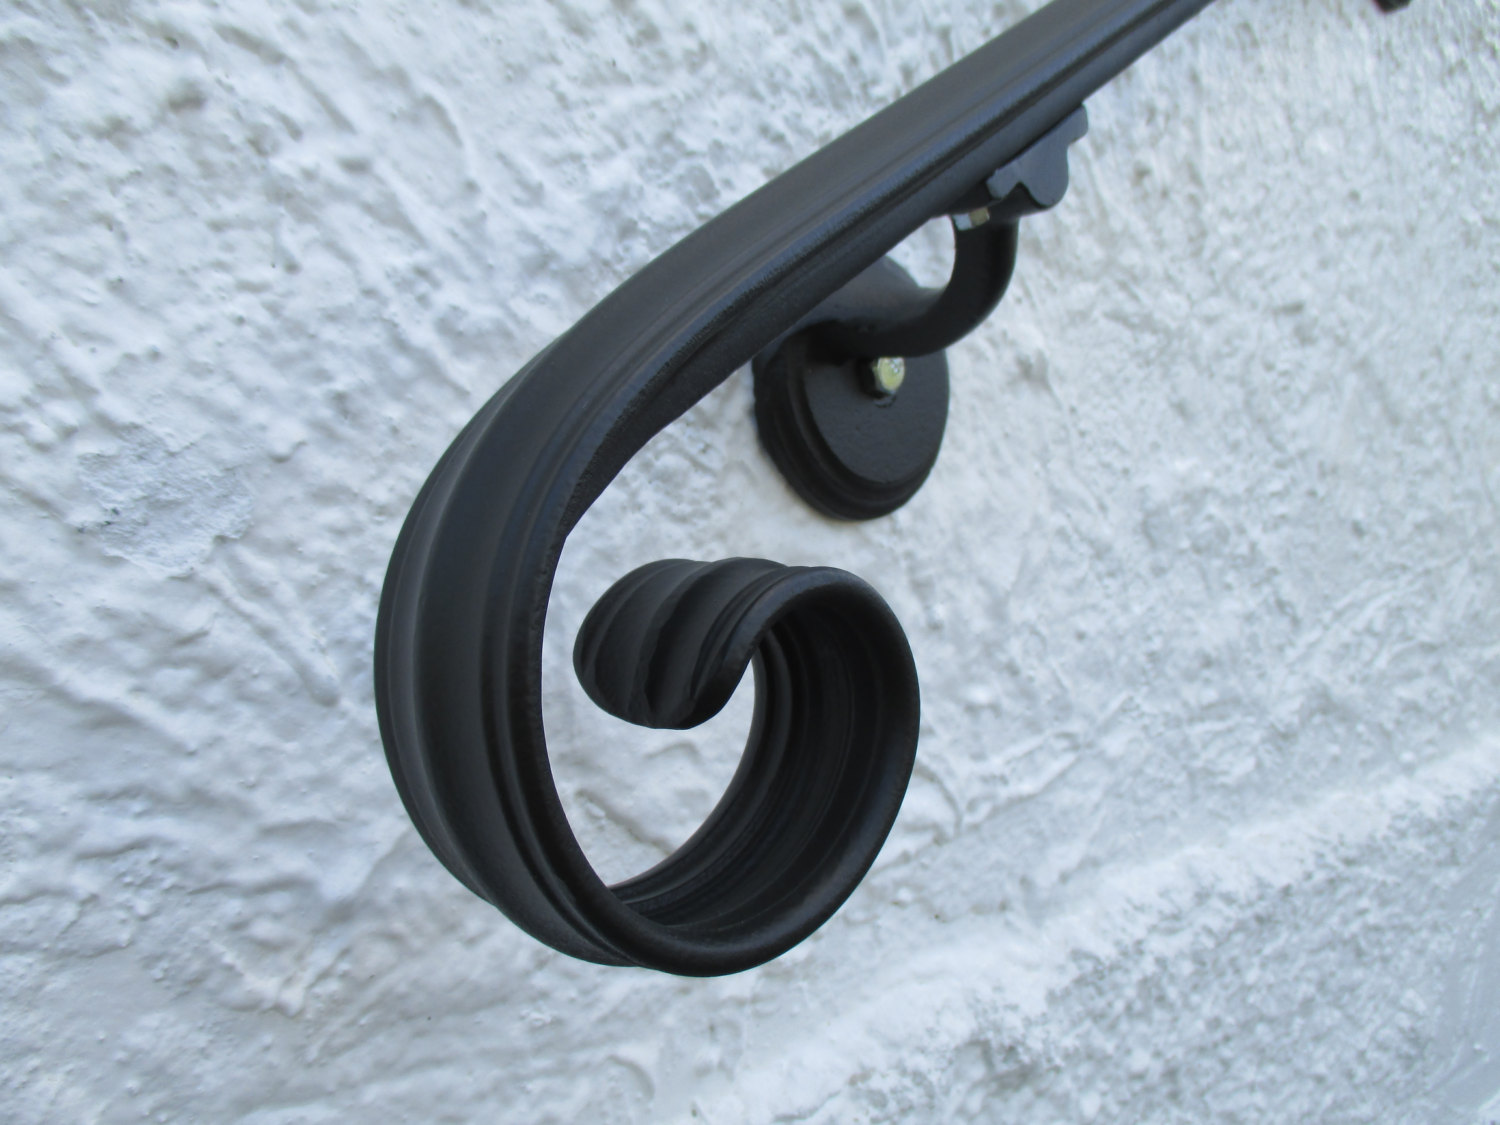 13 Ft Wrought Iron Wall Mount Hand Rail Elegant Scroll Design Interior Or  Exterior